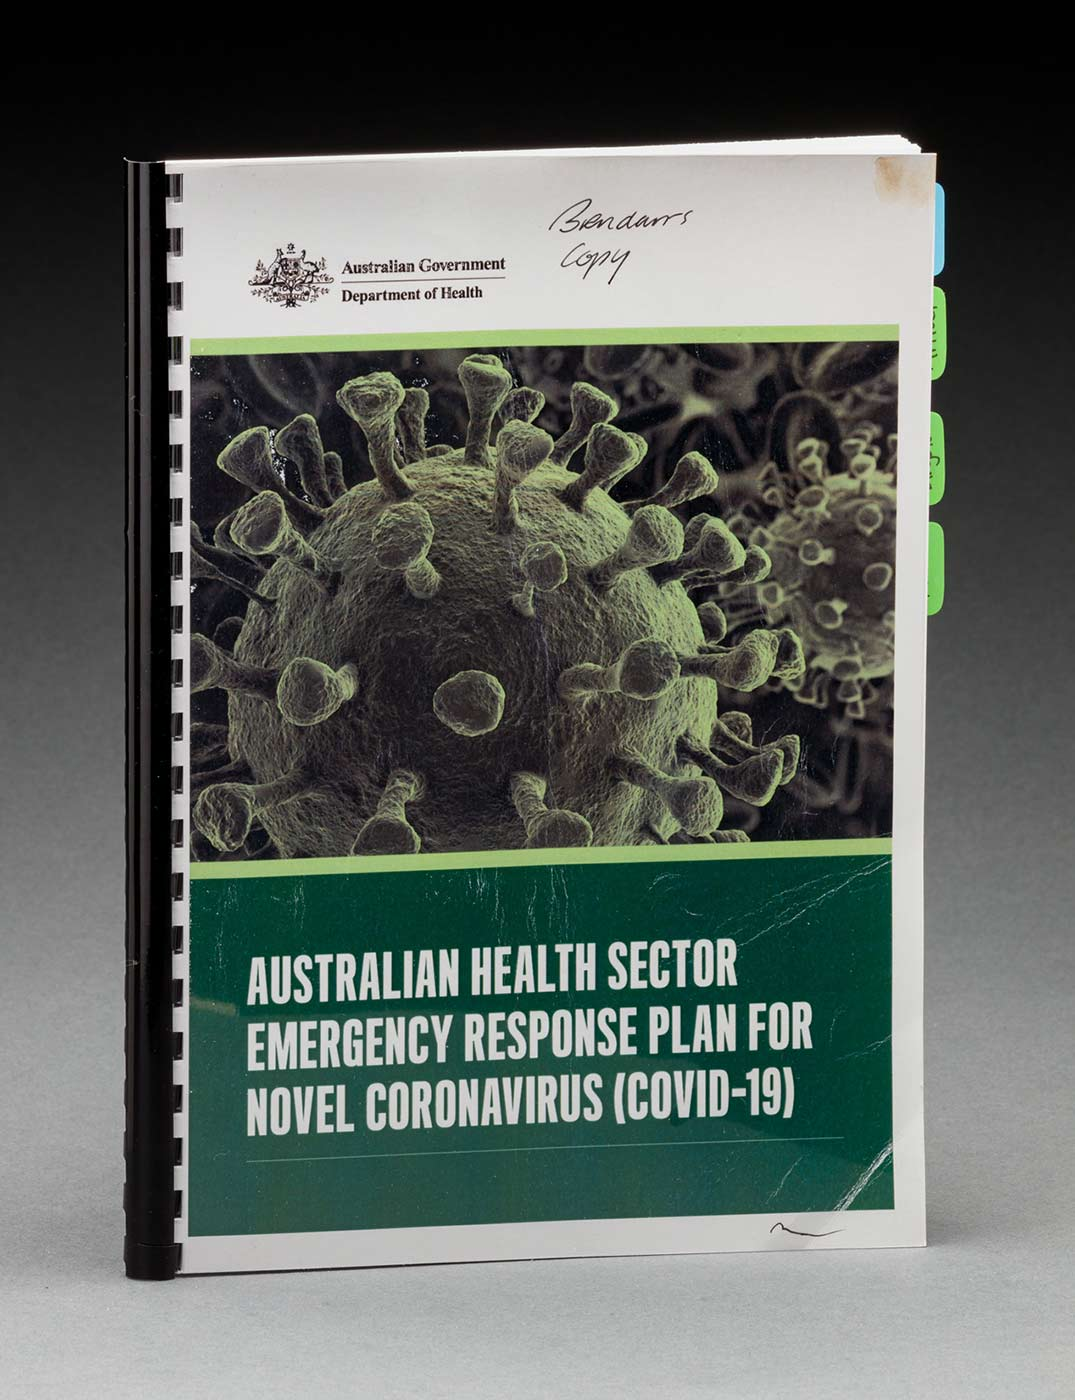 An A4-sized booklet with plastic binding features a front cover with the logo for the Australian Government Department of Health and the text: 'AUSTRALIAN HEALTH SECTOR / EMERGENCY RESPONSE PLAN FOR NOVEL CORONAVIRUS (COVID-19)'. Handwritten at the top is the text: 'Brendan's copy'. - click to view larger image